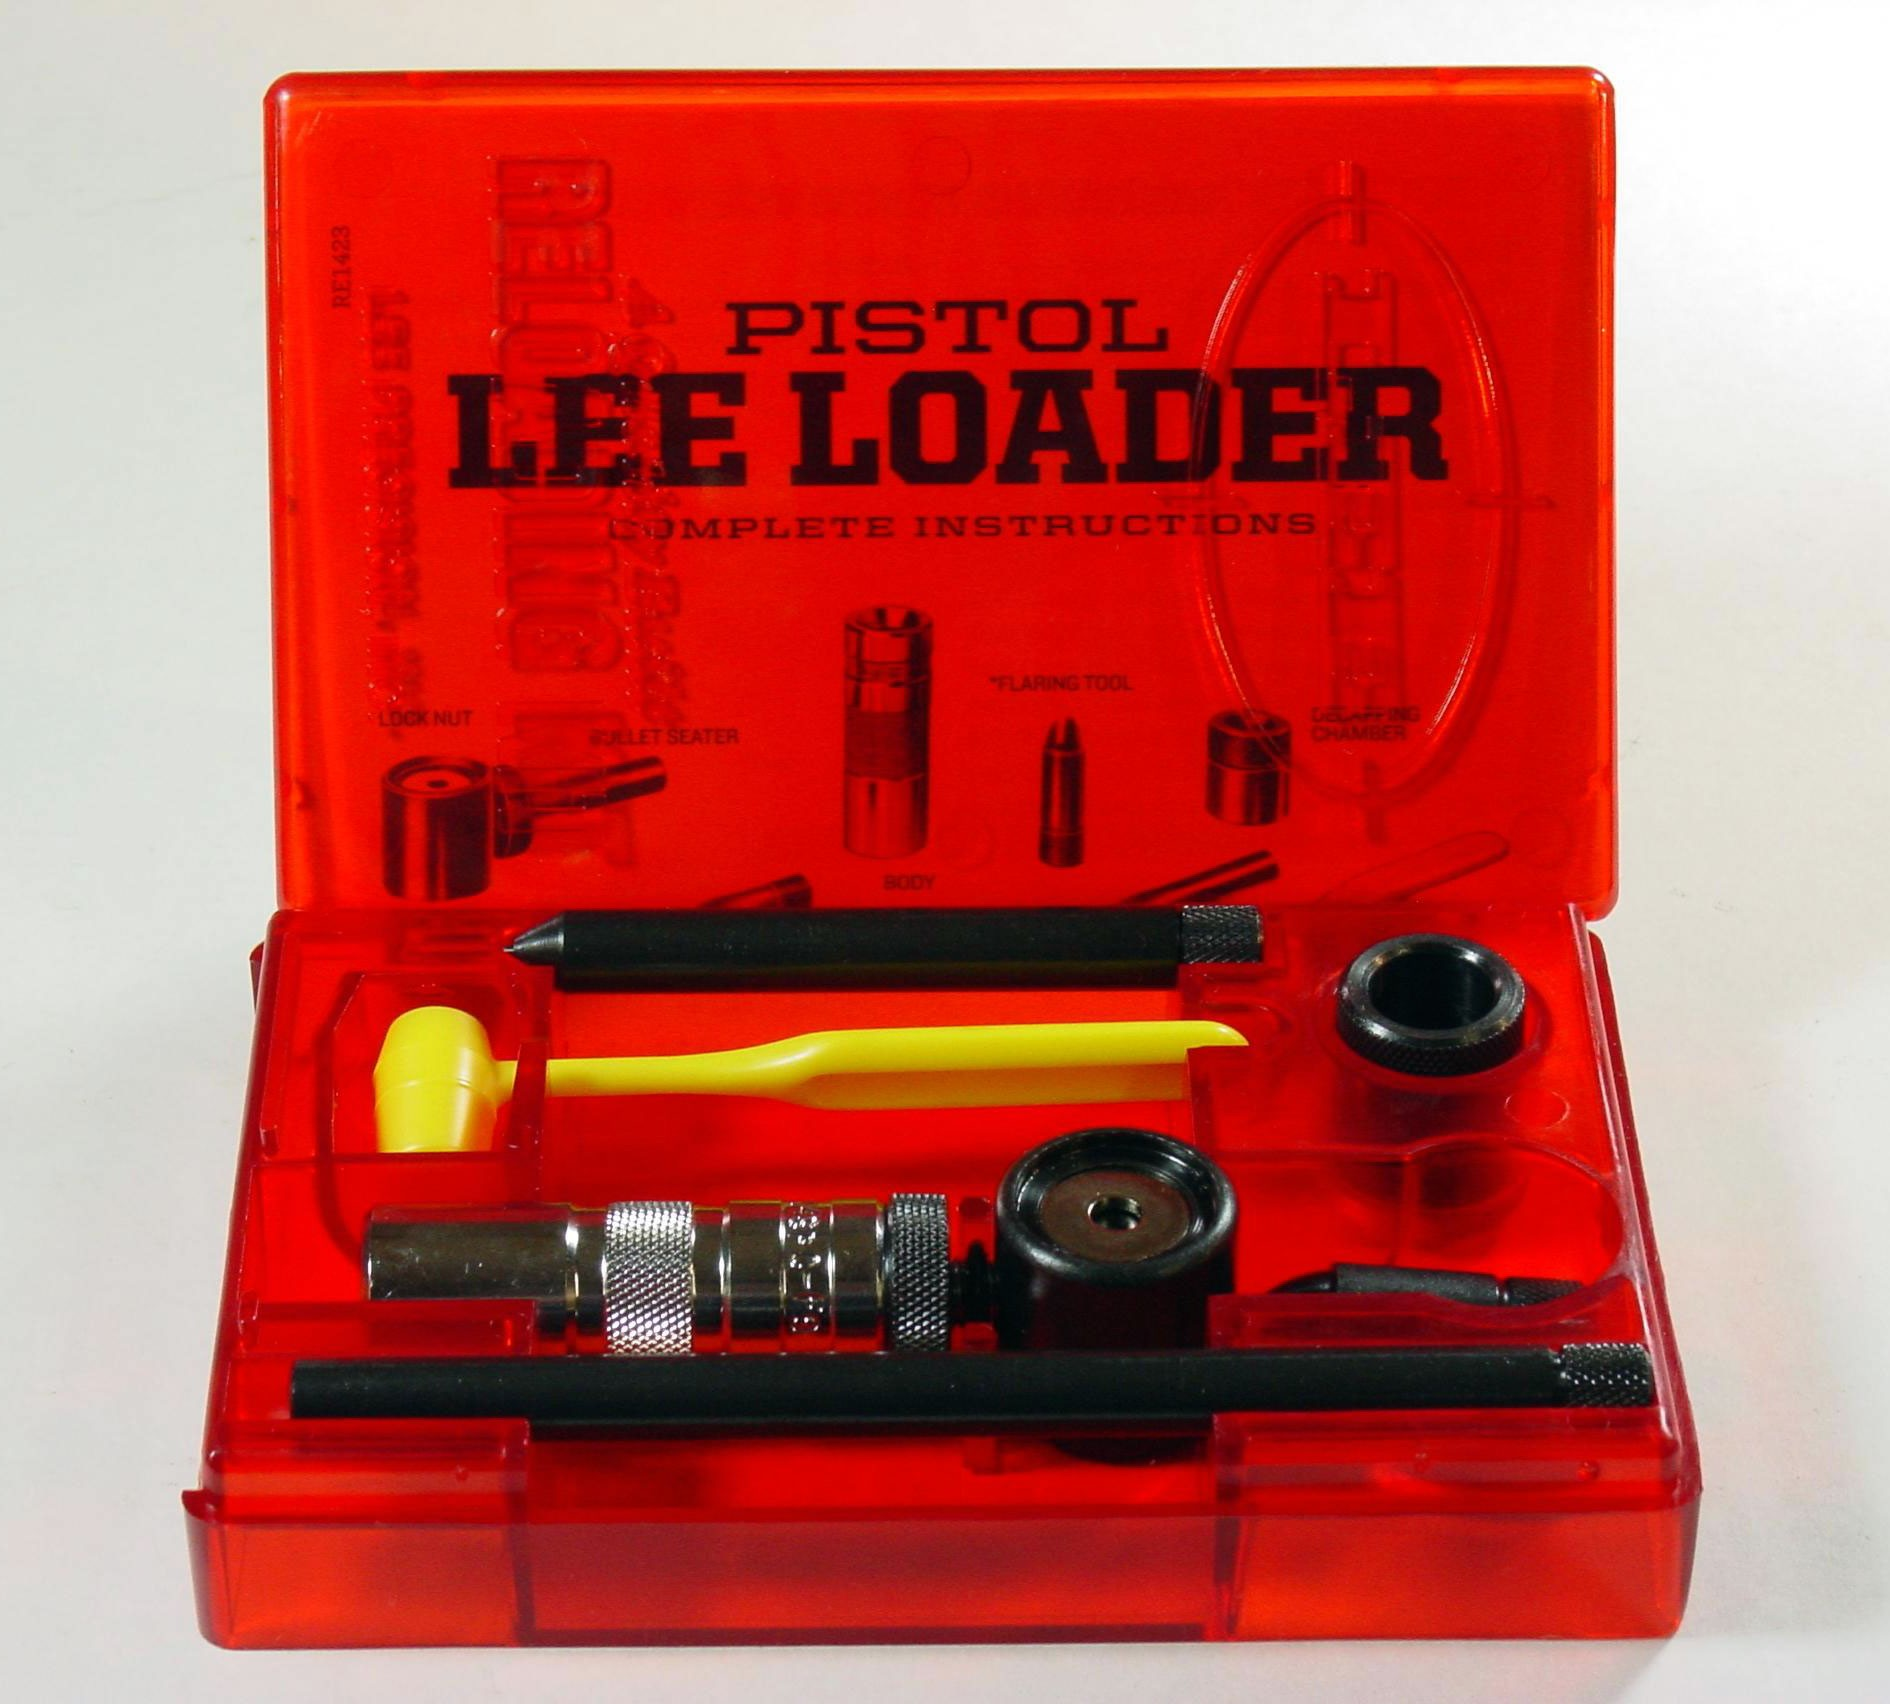 Lee loader reloading kits are perfect for beginners and survival kits.